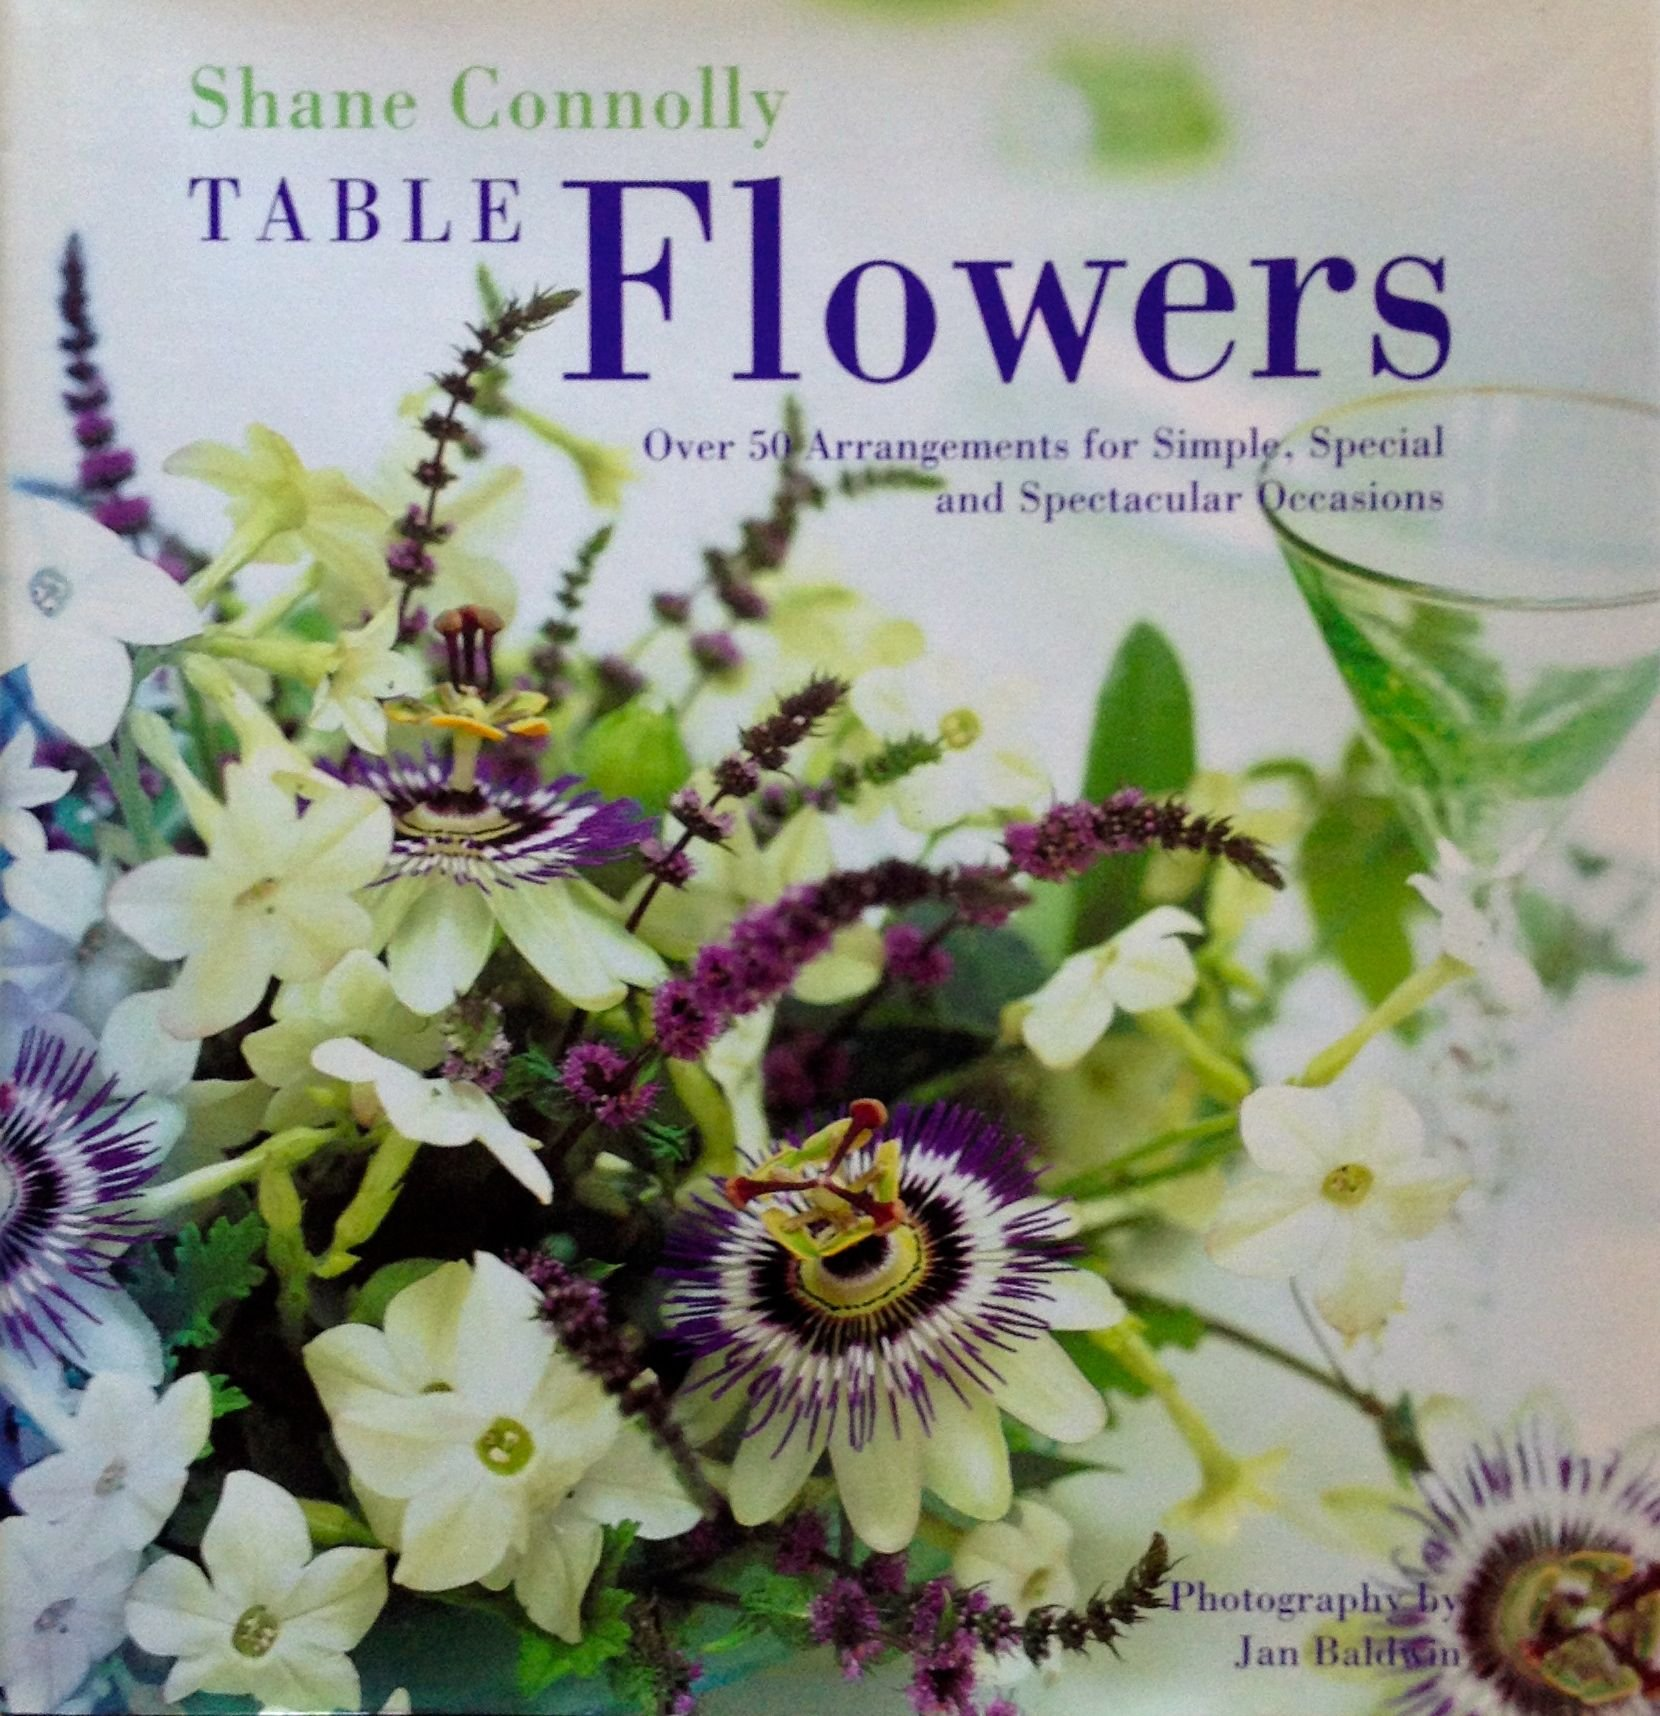 table-flowers-over-50-arrangements-for-simple-special-and-spectacular-occasions